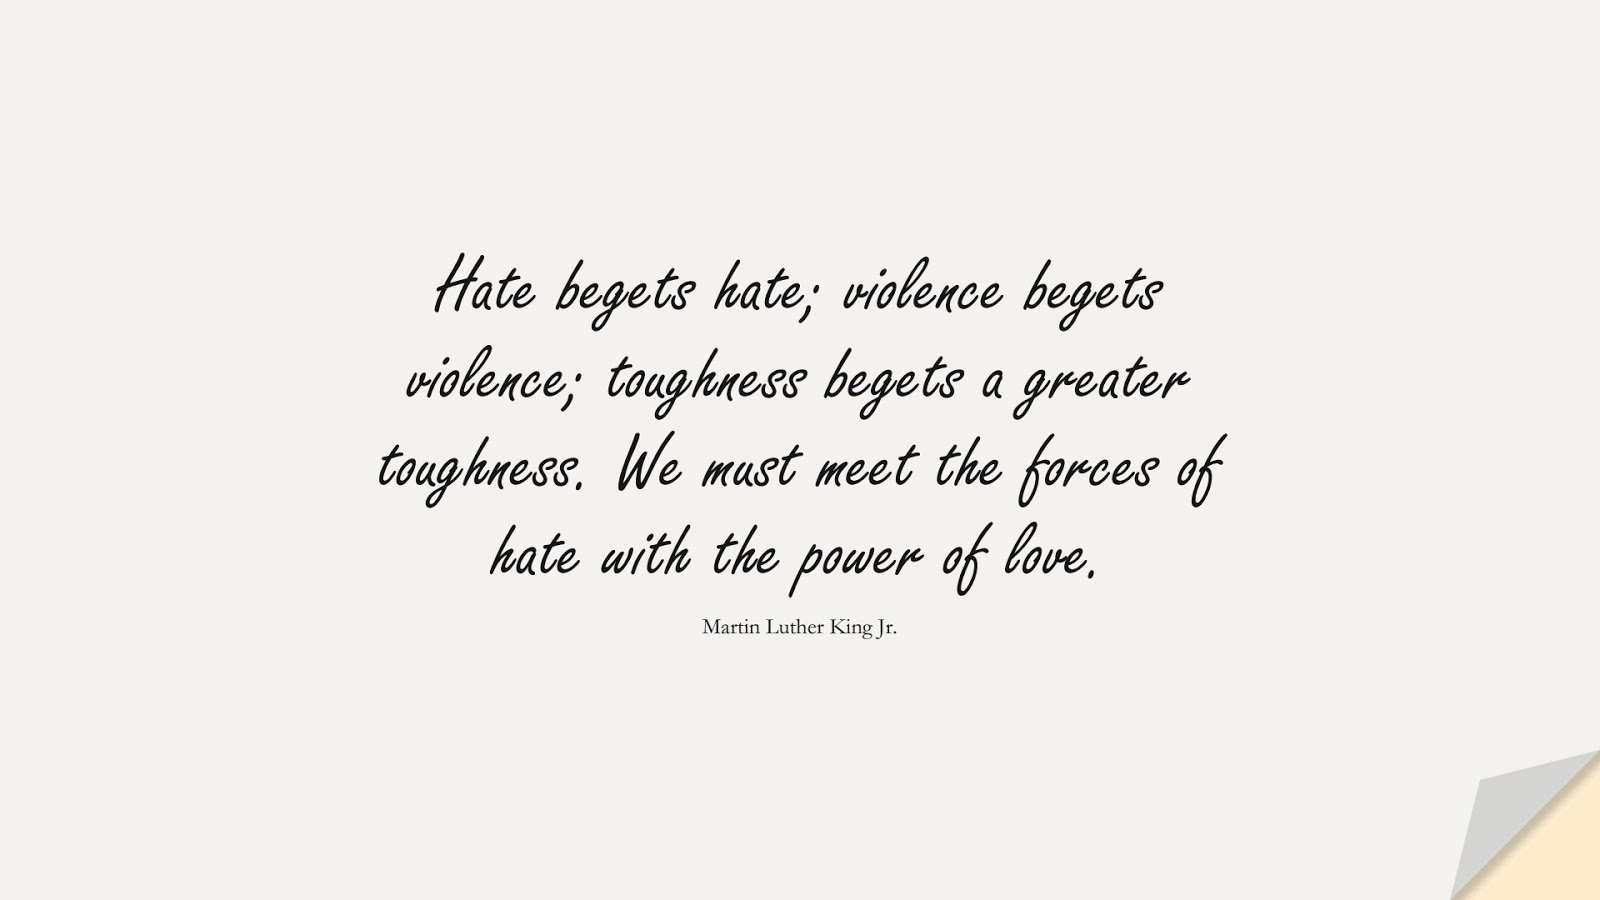 Hate begets hate; violence begets violence; toughness begets a greater toughness. We must meet the forces of hate with the power of love. (Martin Luther King Jr.);  #MartinLutherKingJrQuotes